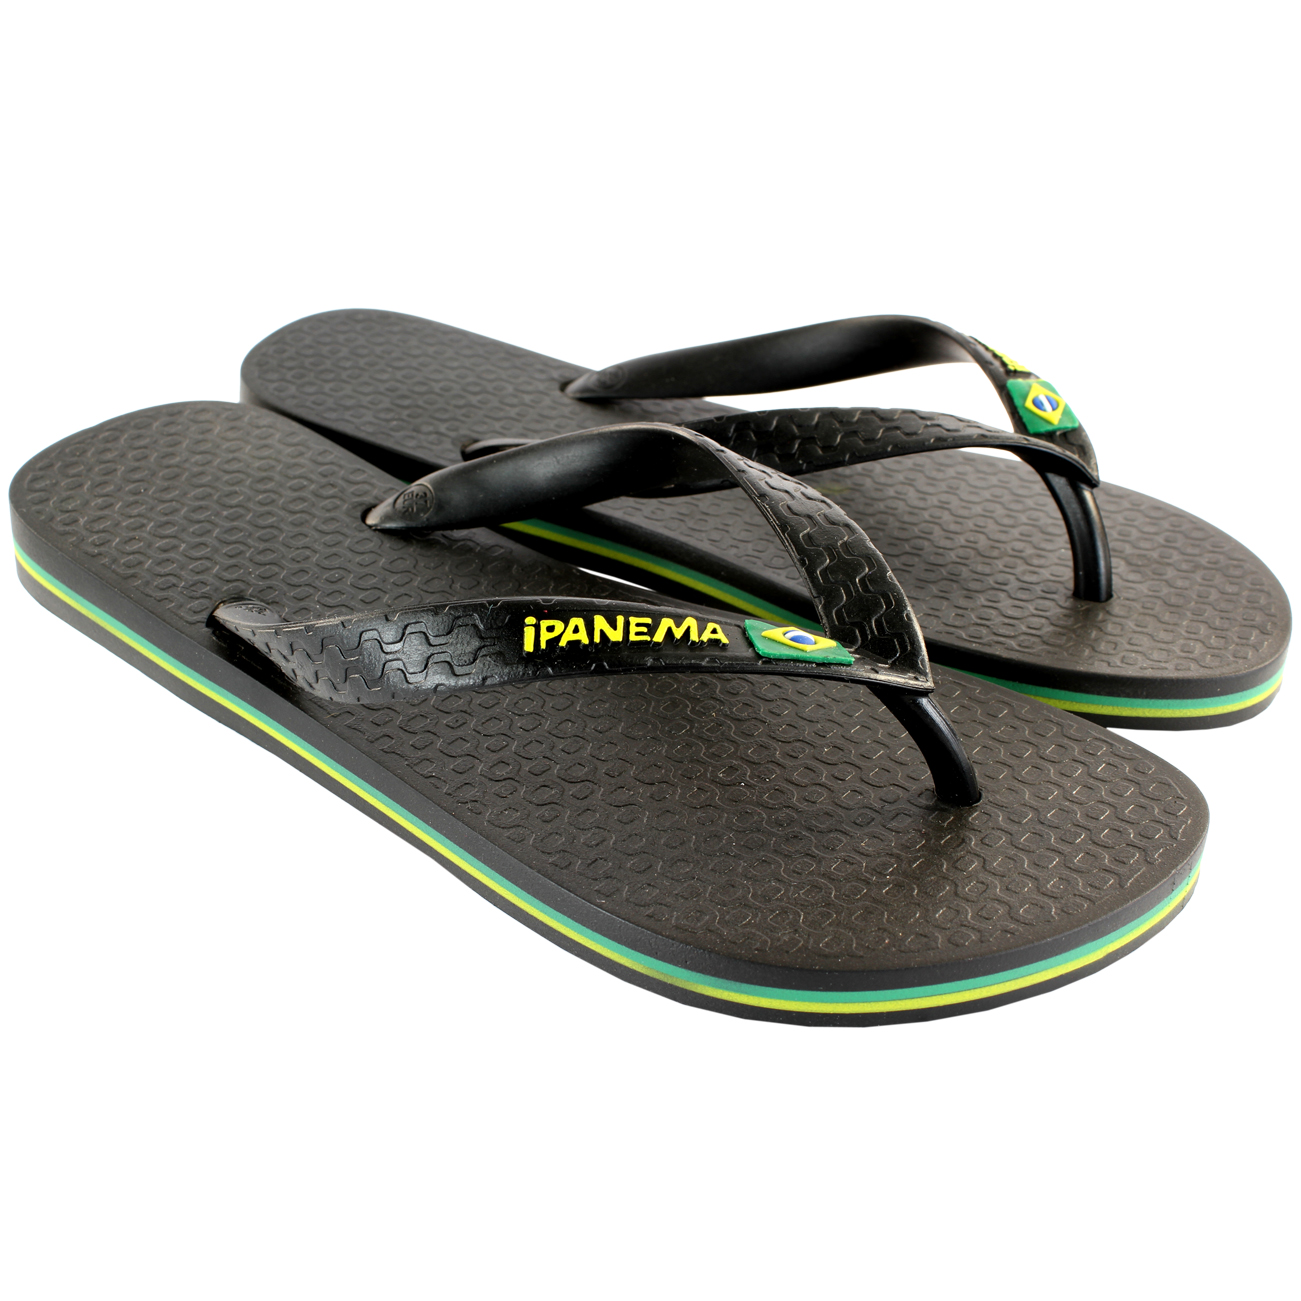 damen schuhe ipanema brazil flip flops sandale designer flipflops eu sizes 36 41. Black Bedroom Furniture Sets. Home Design Ideas